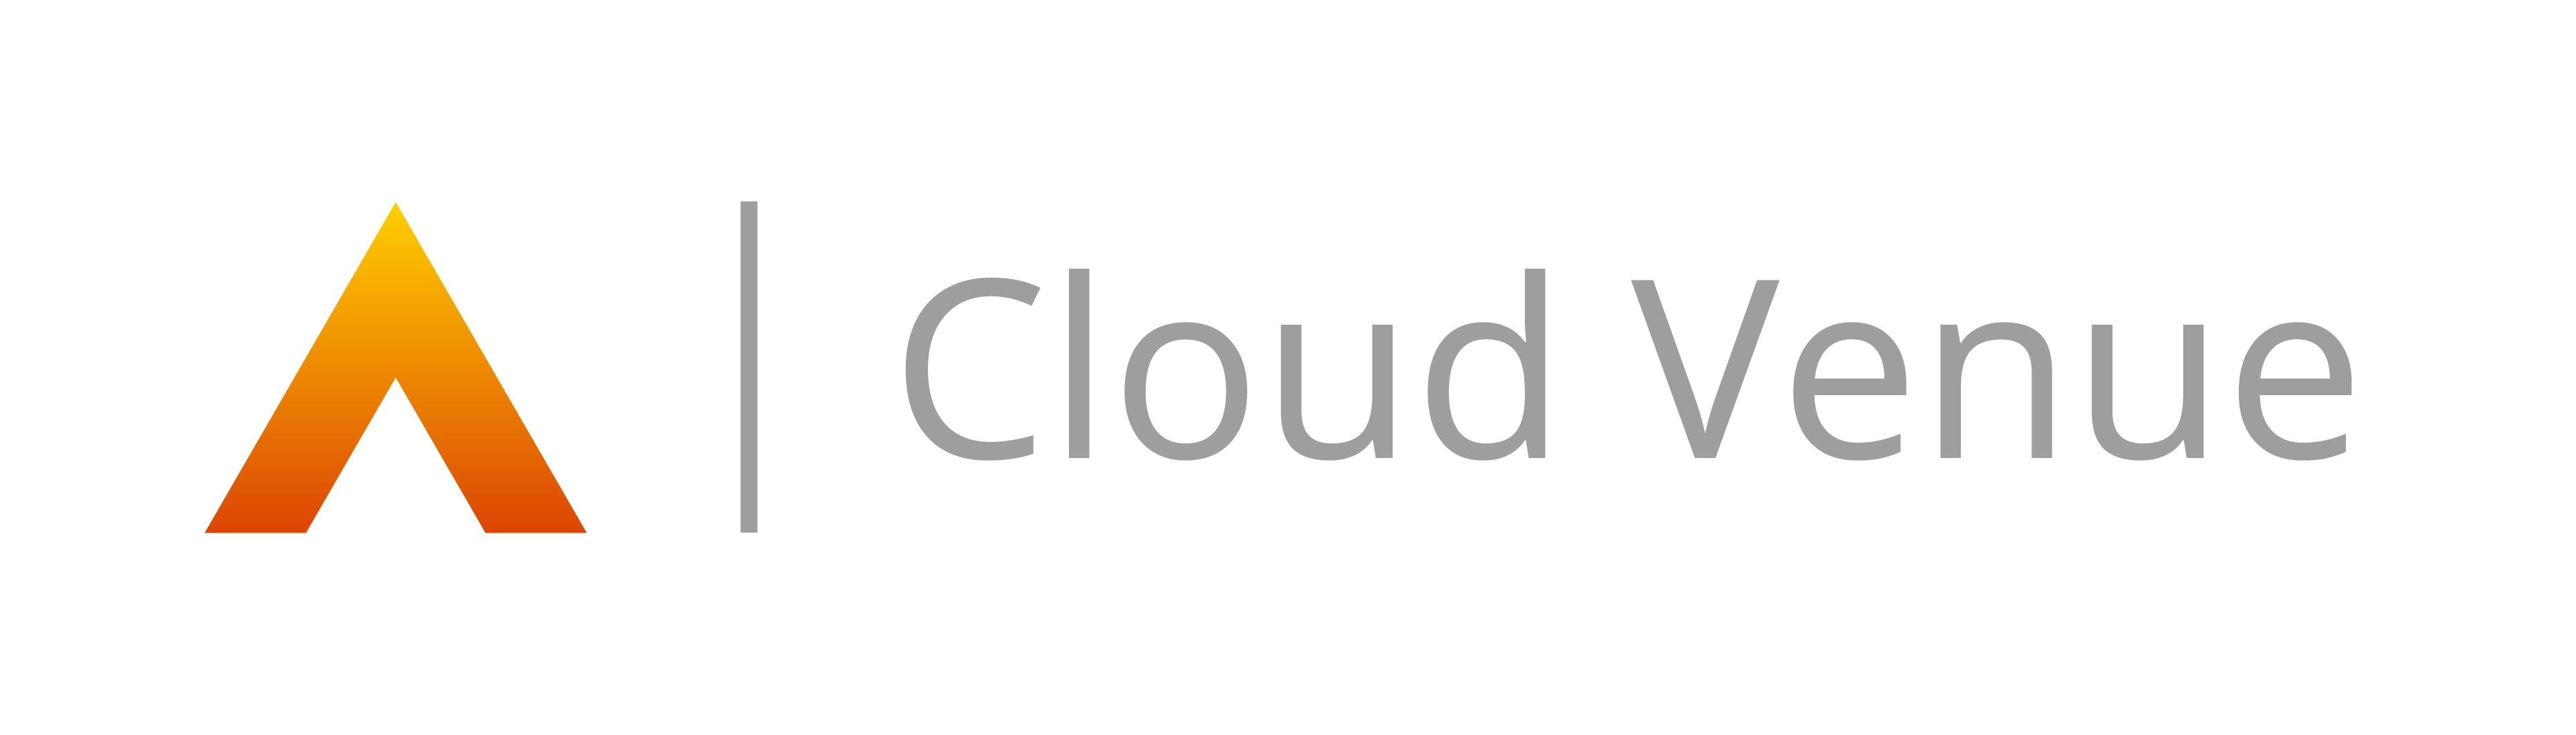 Cloud Venue